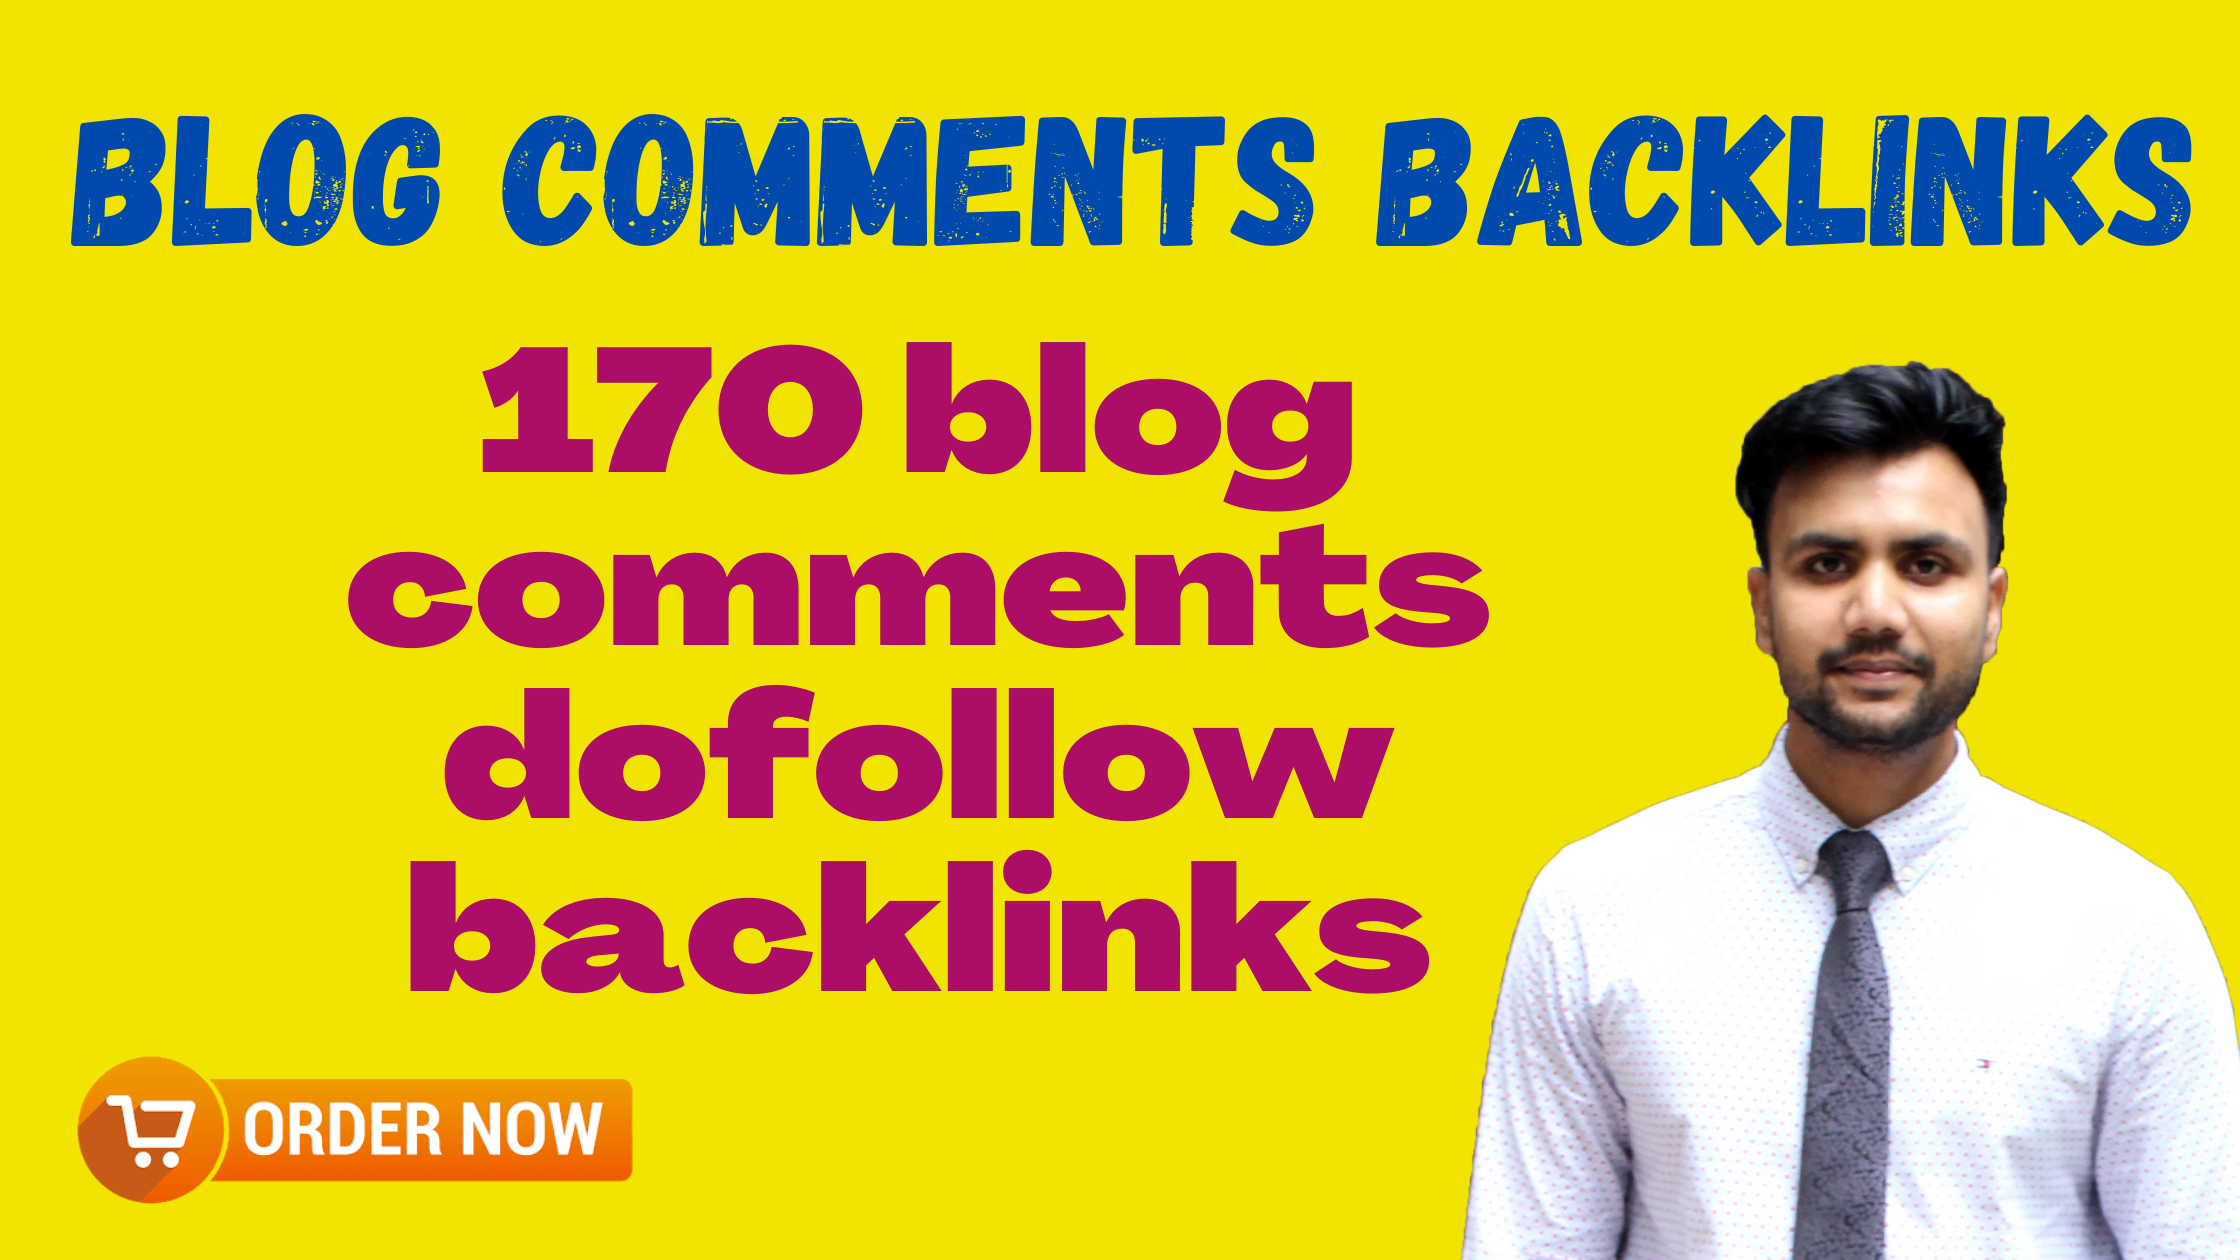 I will make 170 high quality blog comments dofollow backlinks